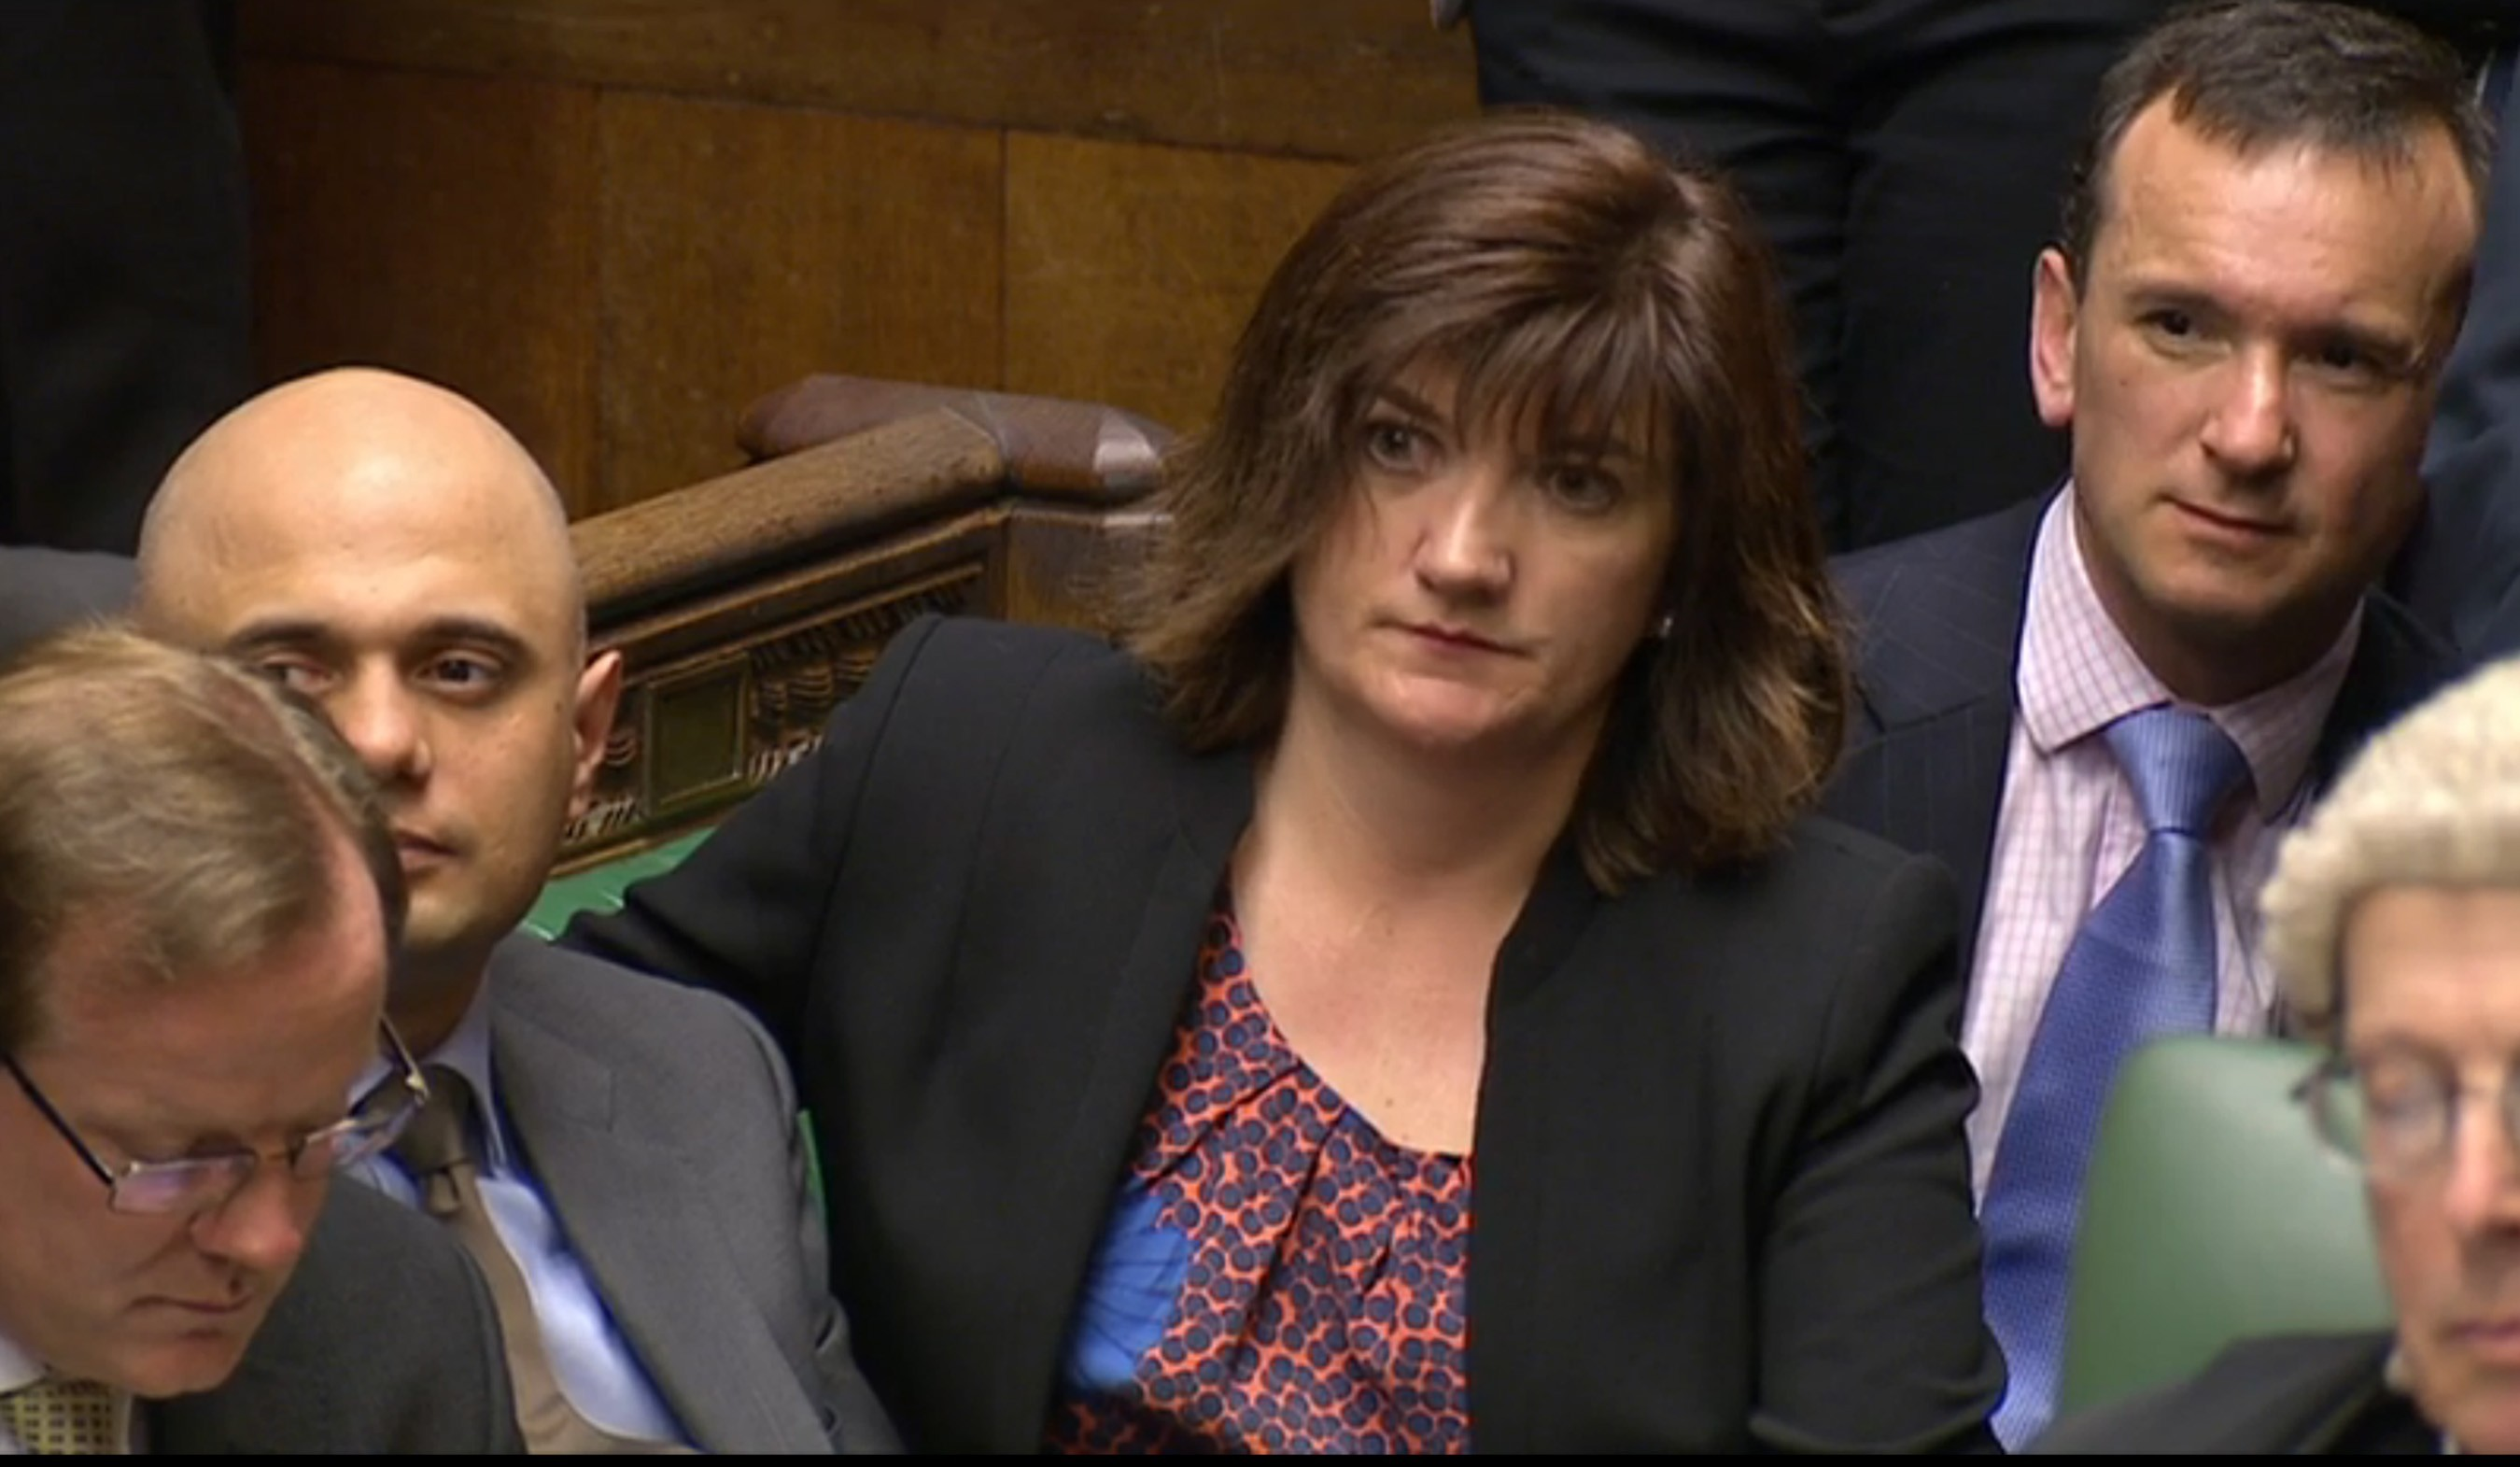 Nicky Morgan, MP and chair of the Treasury Select Committee